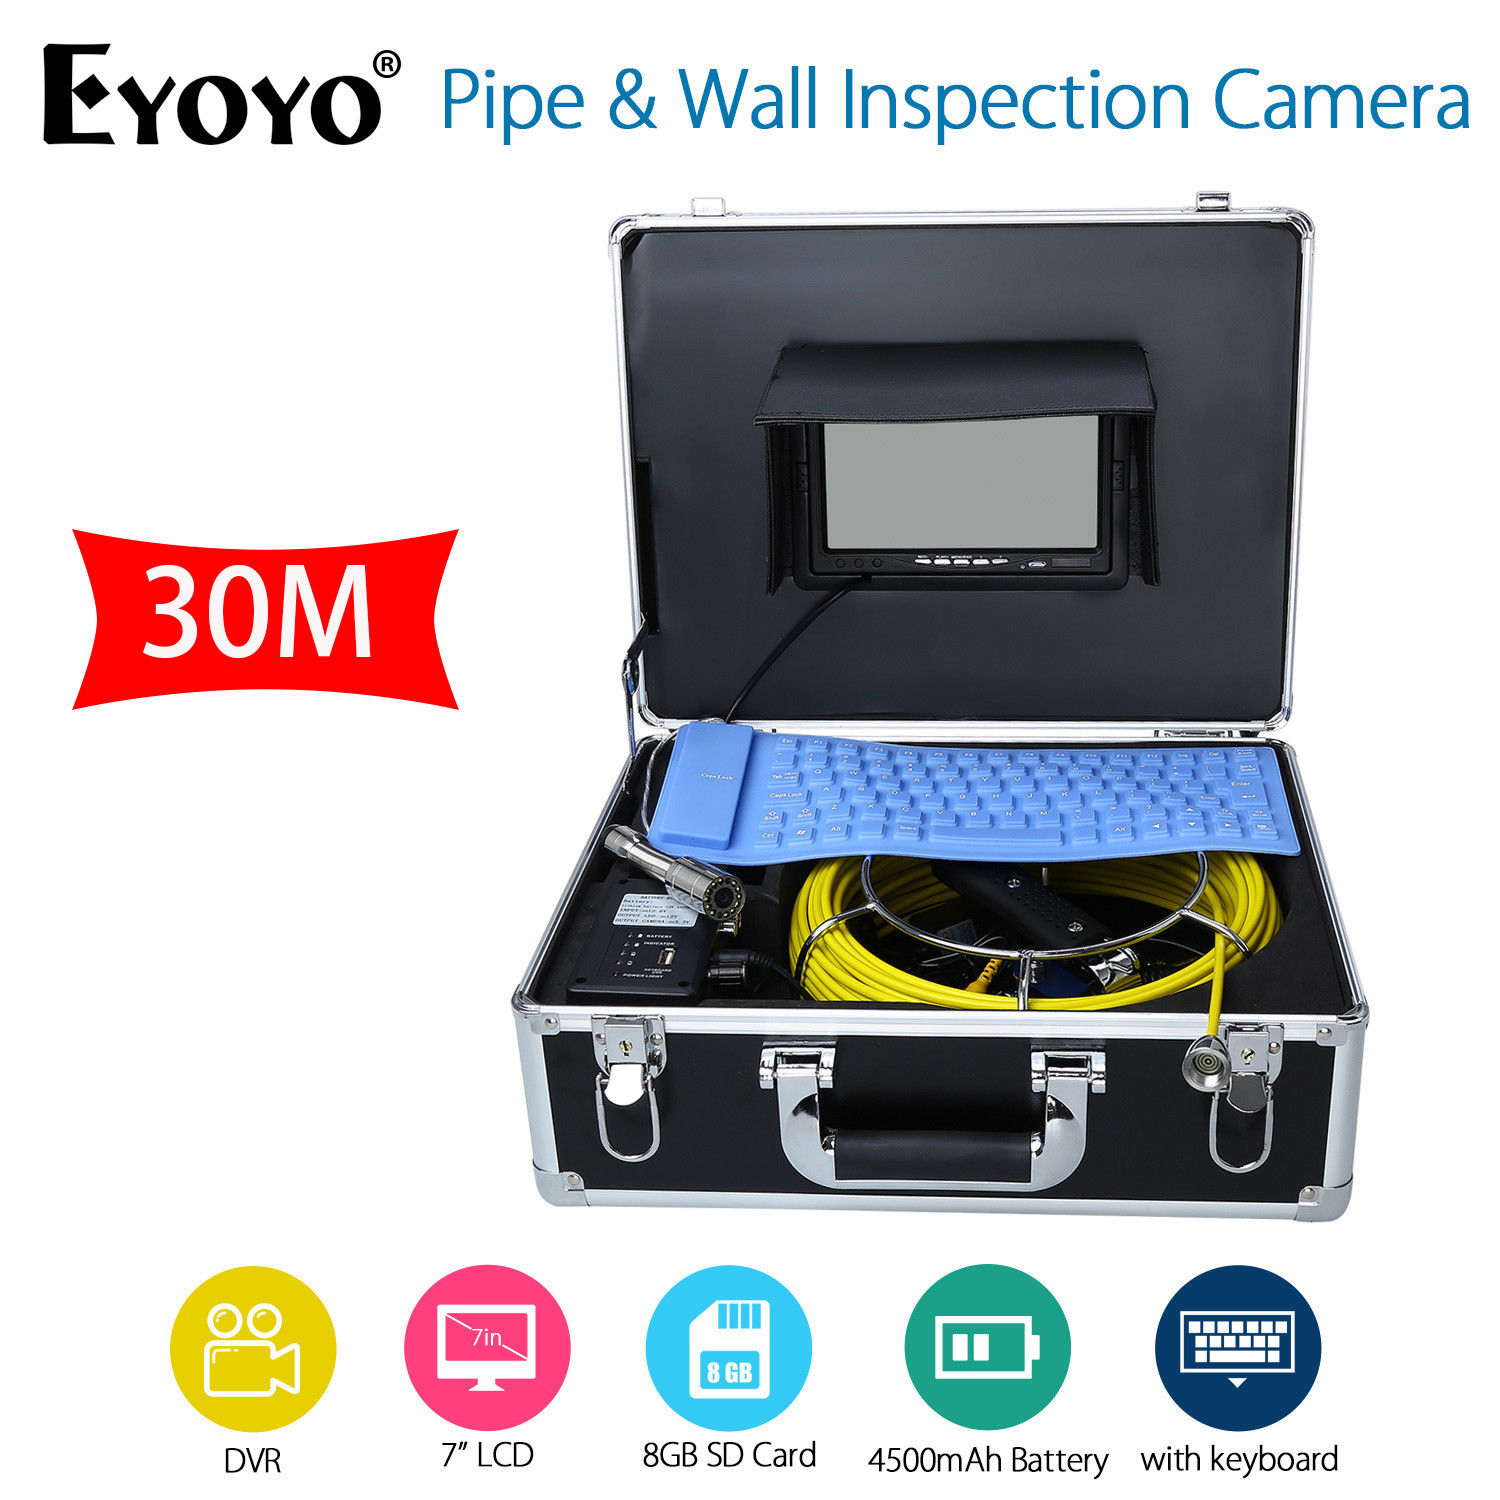 EYOYO 7 LCD Screen 30M HD 1000TVL Sewer Drain Camera Pipe Wall Inspection Endoscope Cam With Keyboard DVR Recording 8GB eyoyo 7 lcd screen 20m 800 480 1000tvl 4500mah sewer drain camera pipe wall inspection endoscope w keyboard dvr recording 8gb